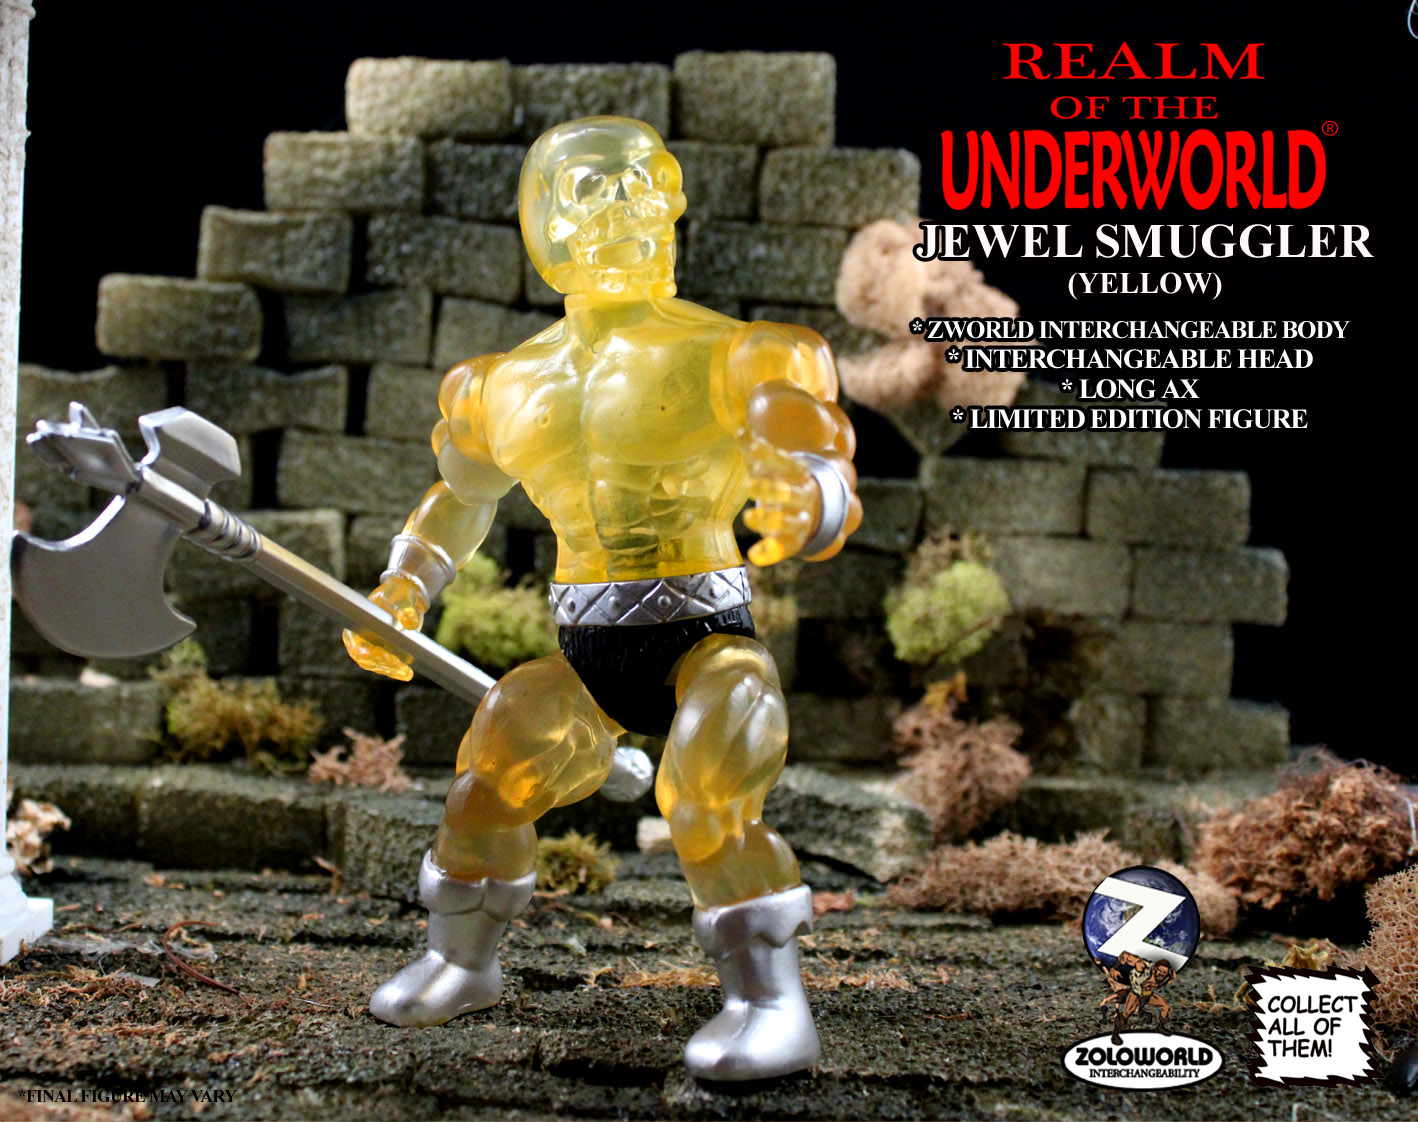 THE JEWEL SMUGGLER (YELLOW) ACTION FIGURE